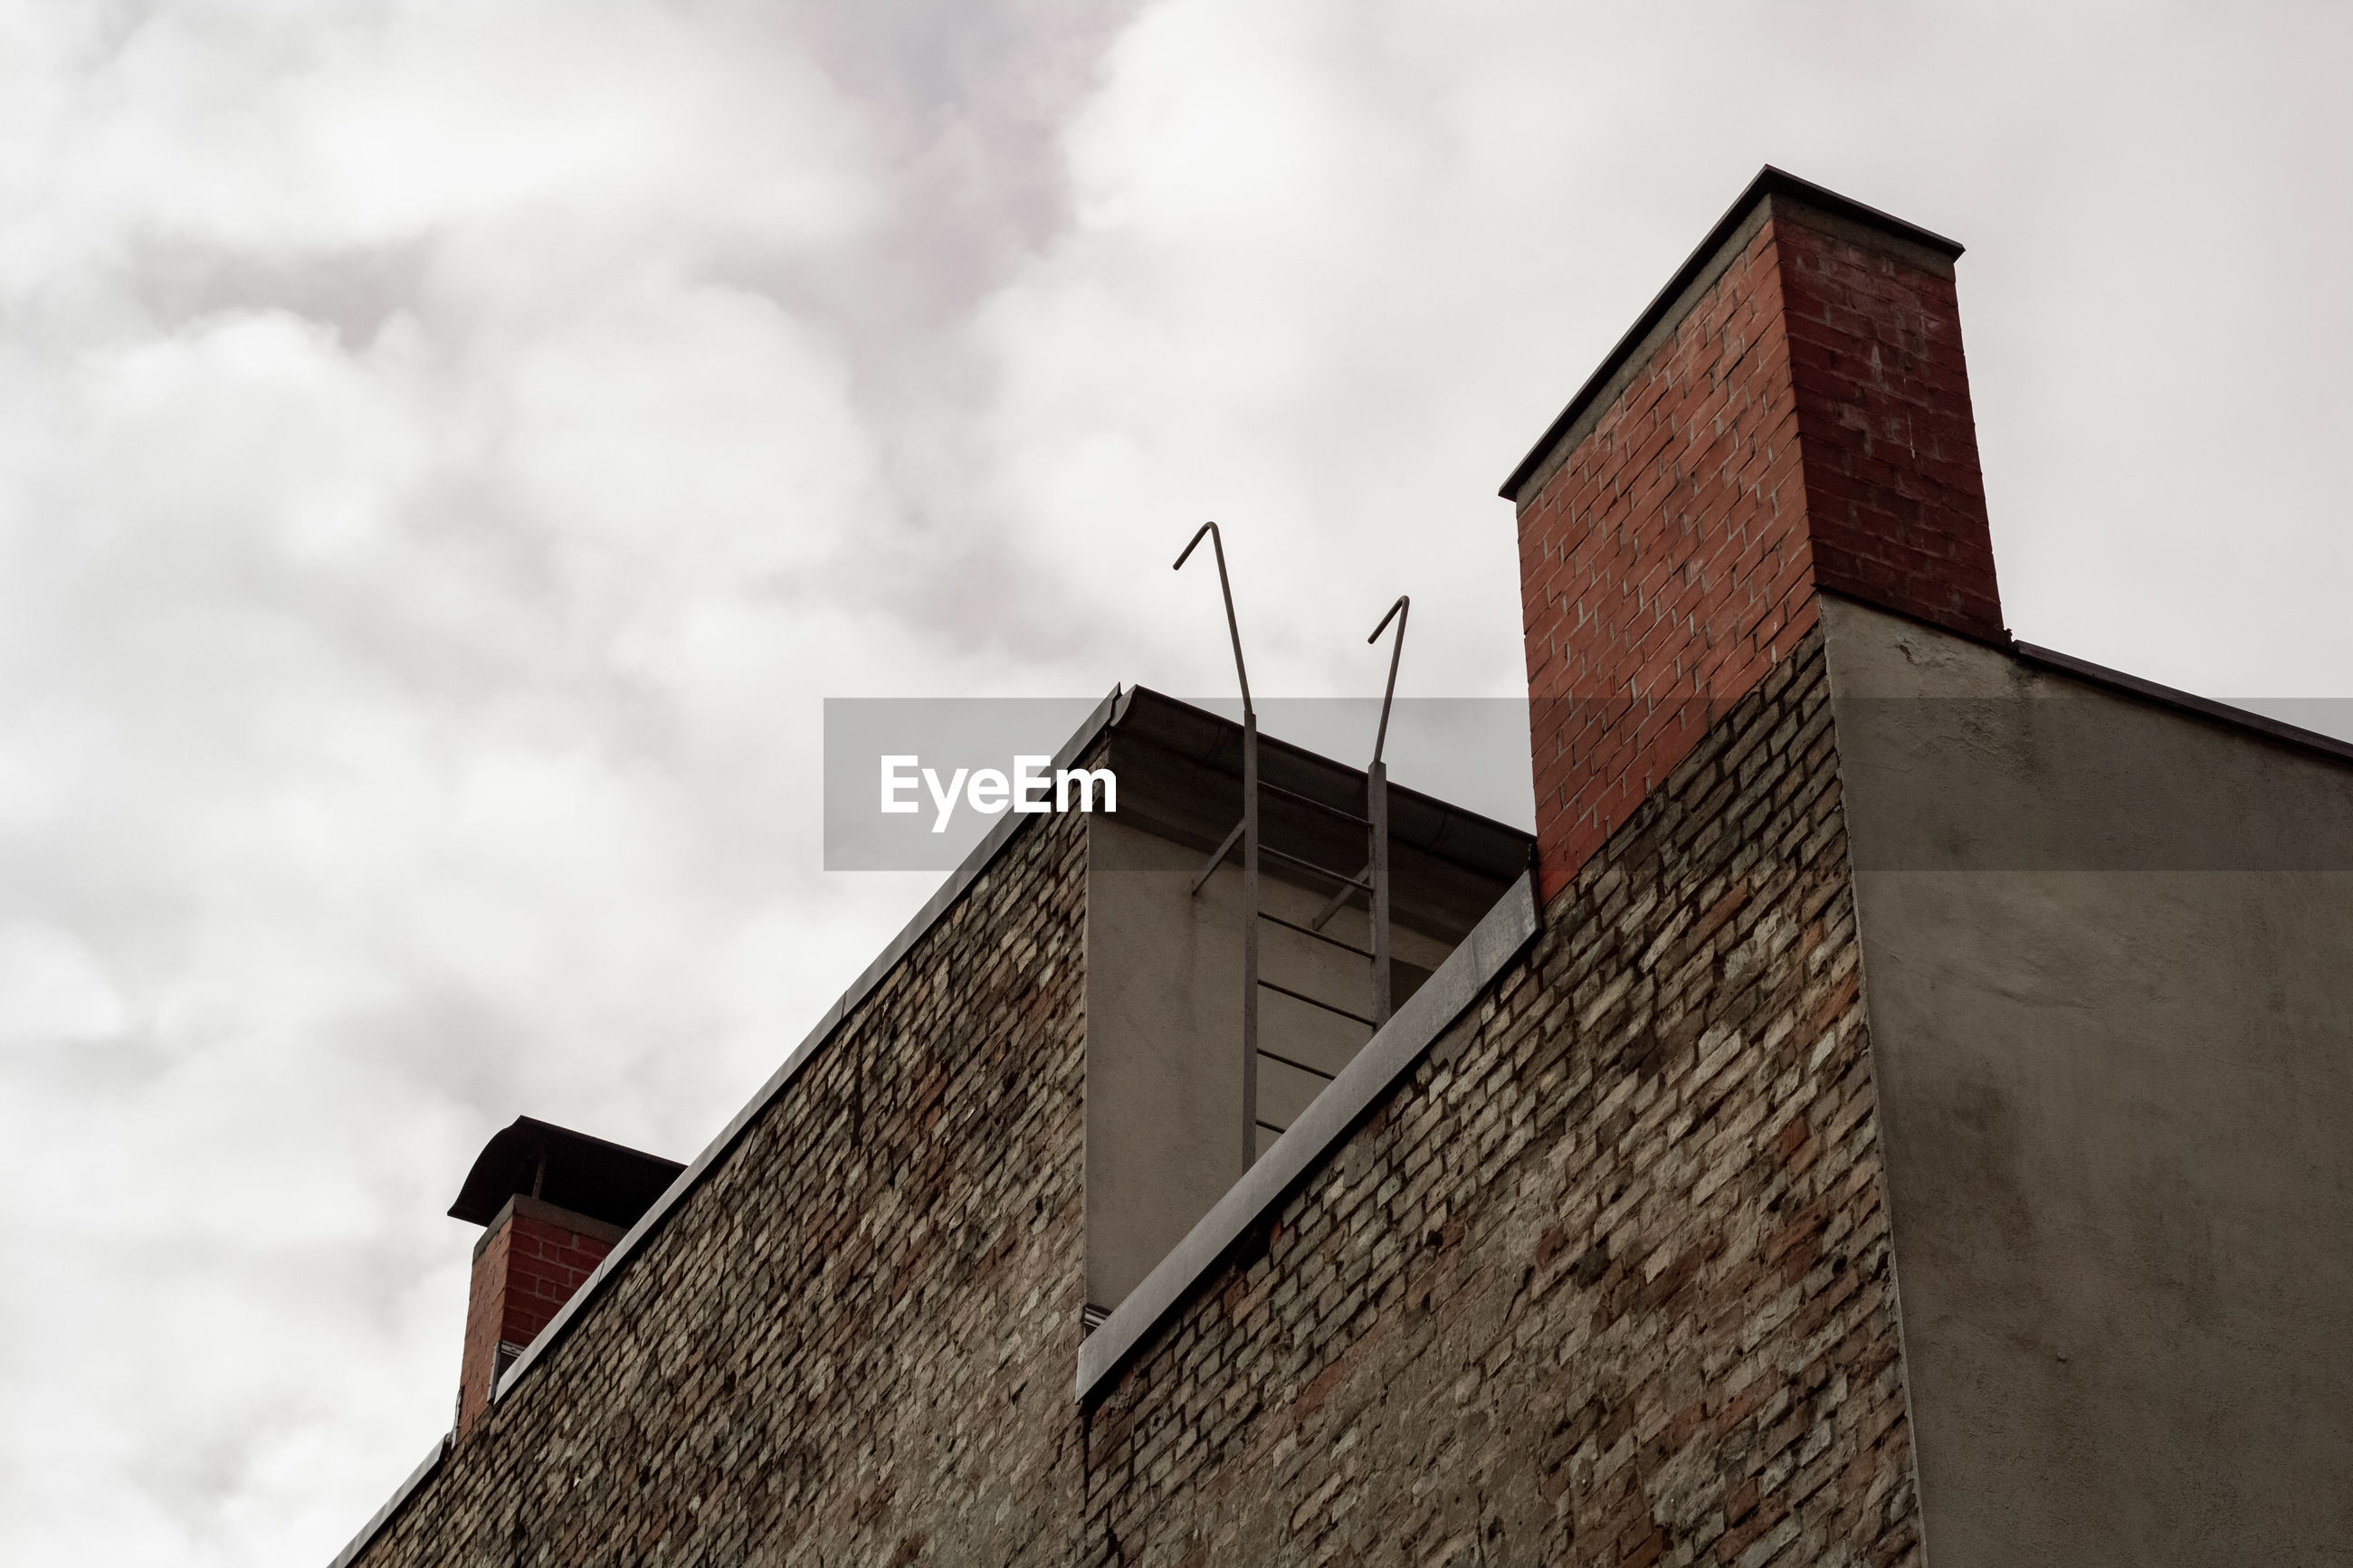 Low angle view of building with chimneys against cloudy sky